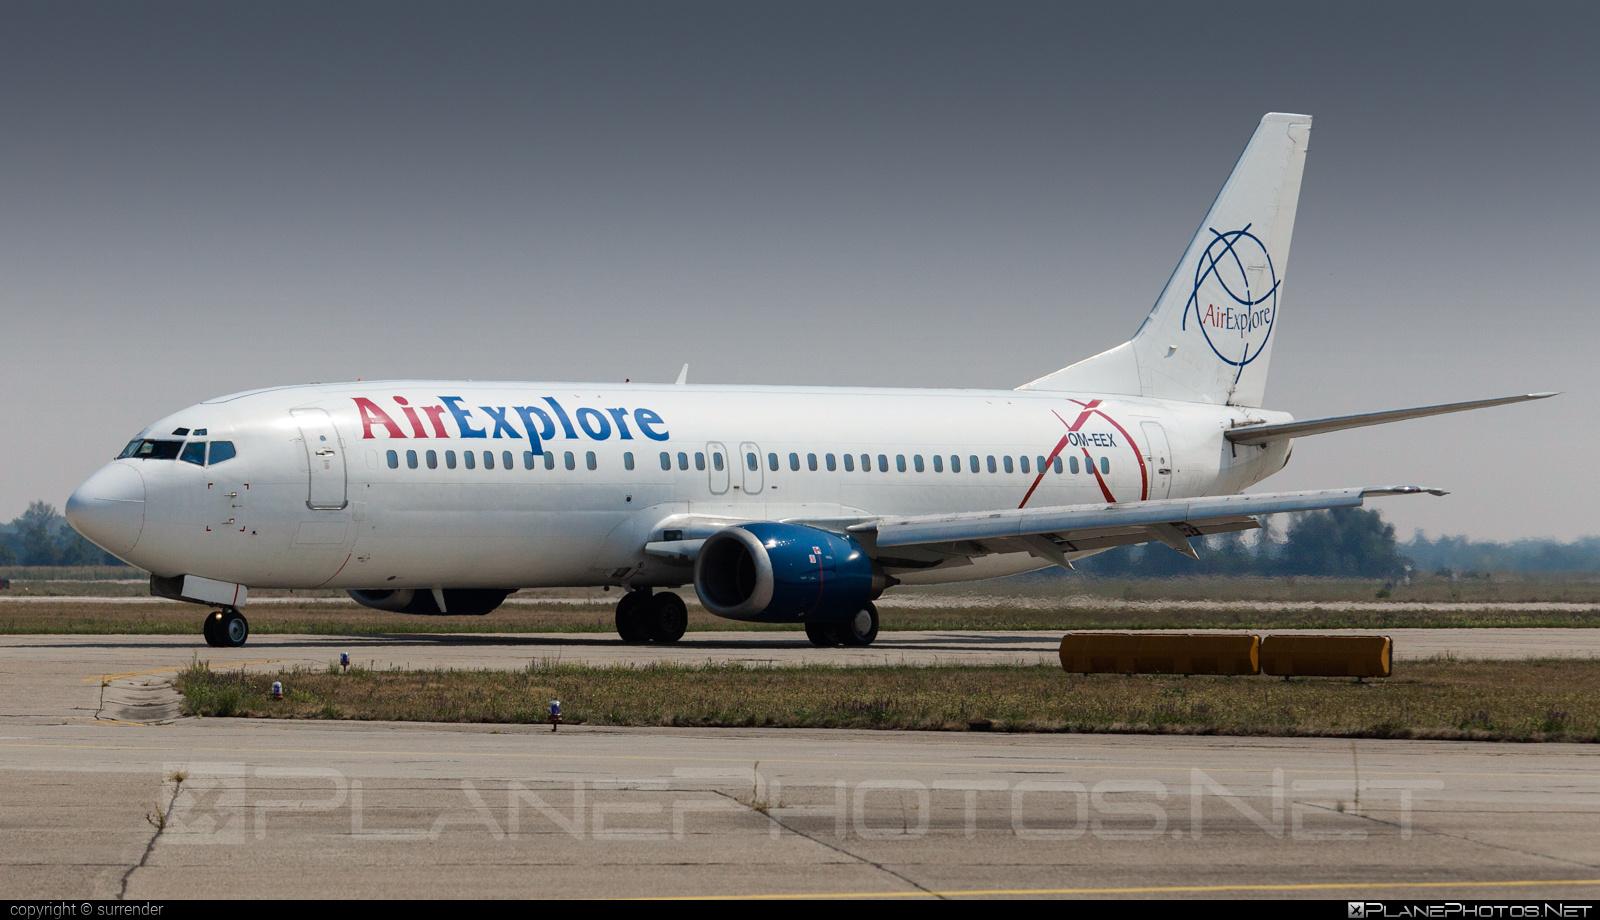 Boeing 737-400 - OM-EEX operated by AirExplore #airexplore #b737 #boeing #boeing737